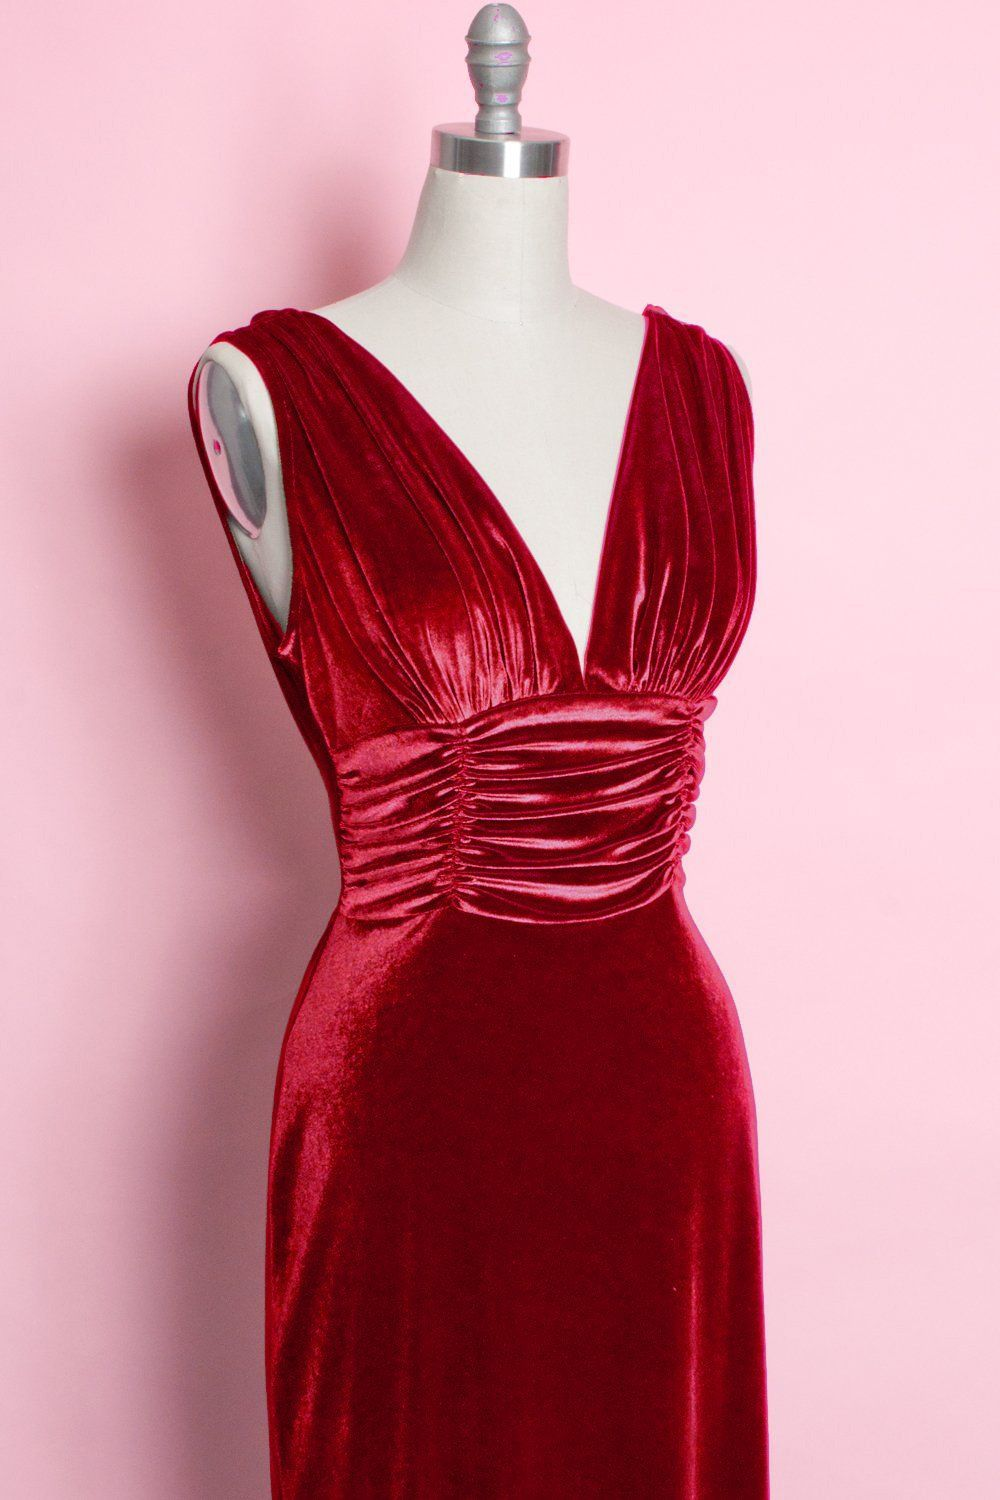 Vintage Inspired Evening Dresses, Gowns and Formal Wear | 1950s ...